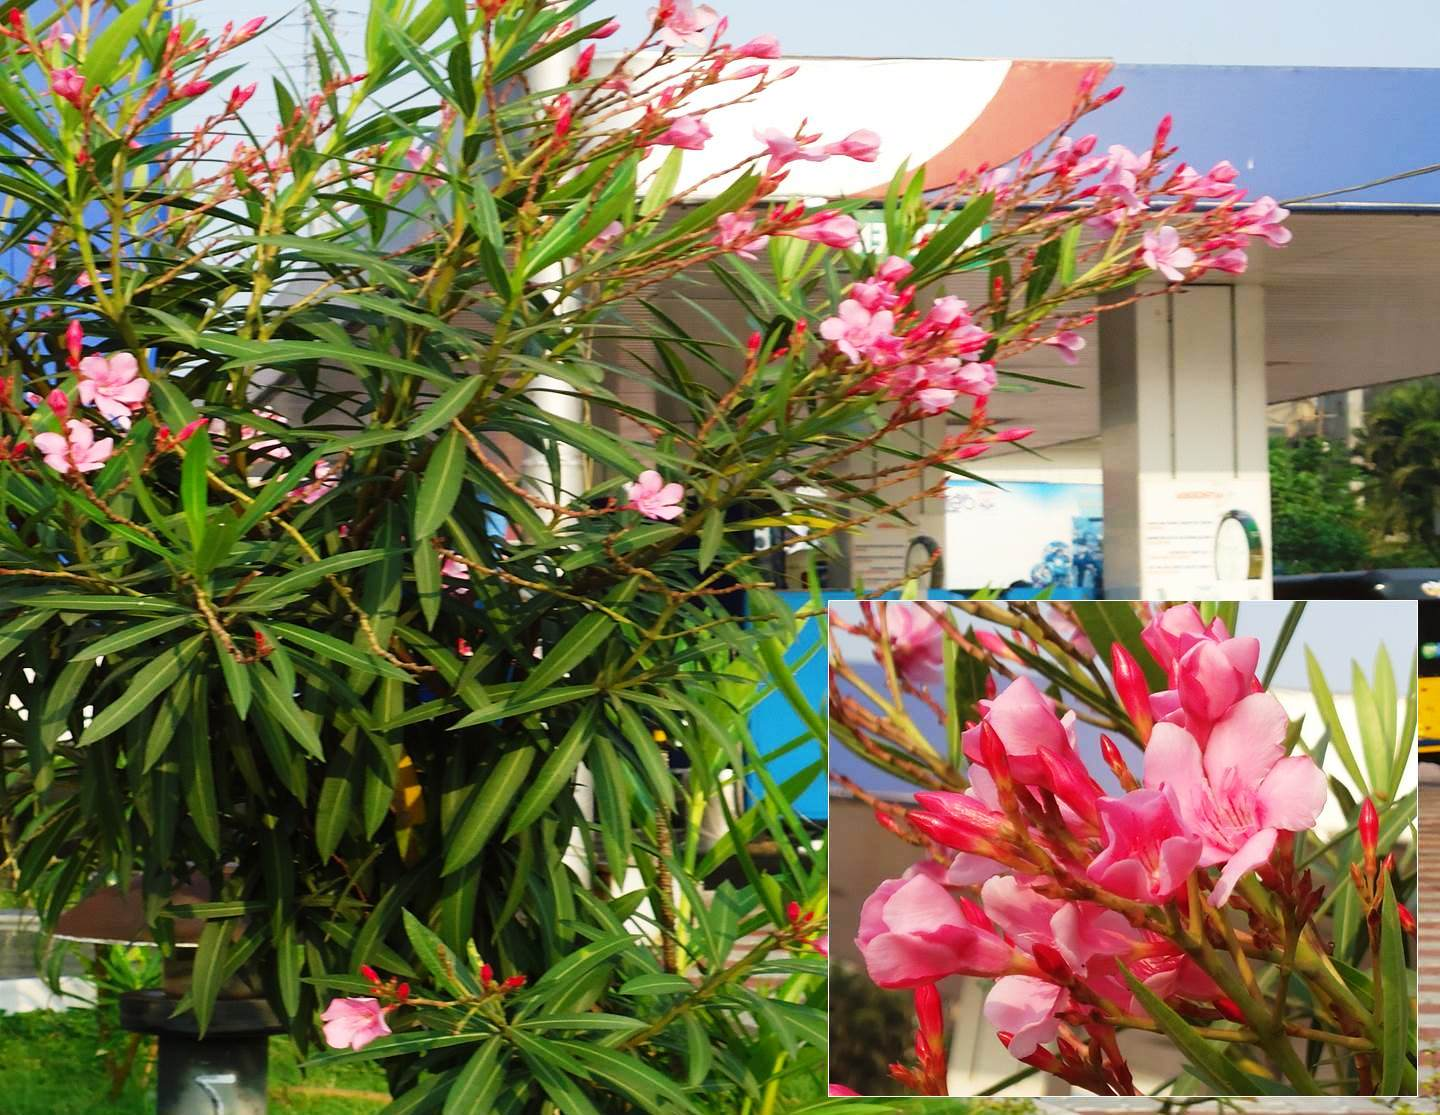 Nerium oleander L. plant in flowering condition.